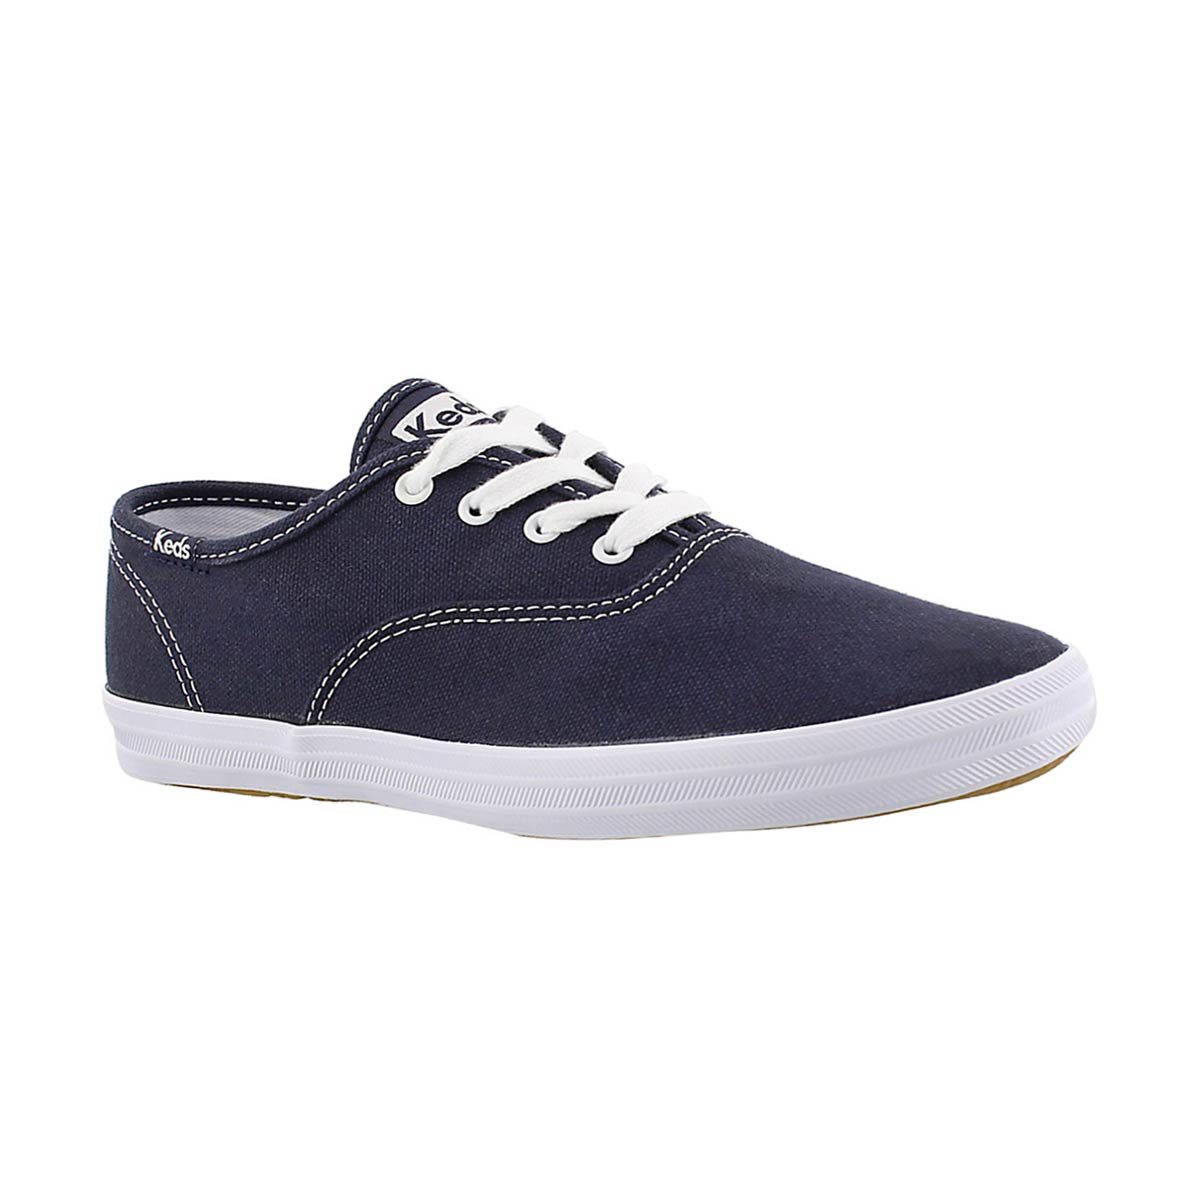 Girls' CHAMPION navy canvas sneakers